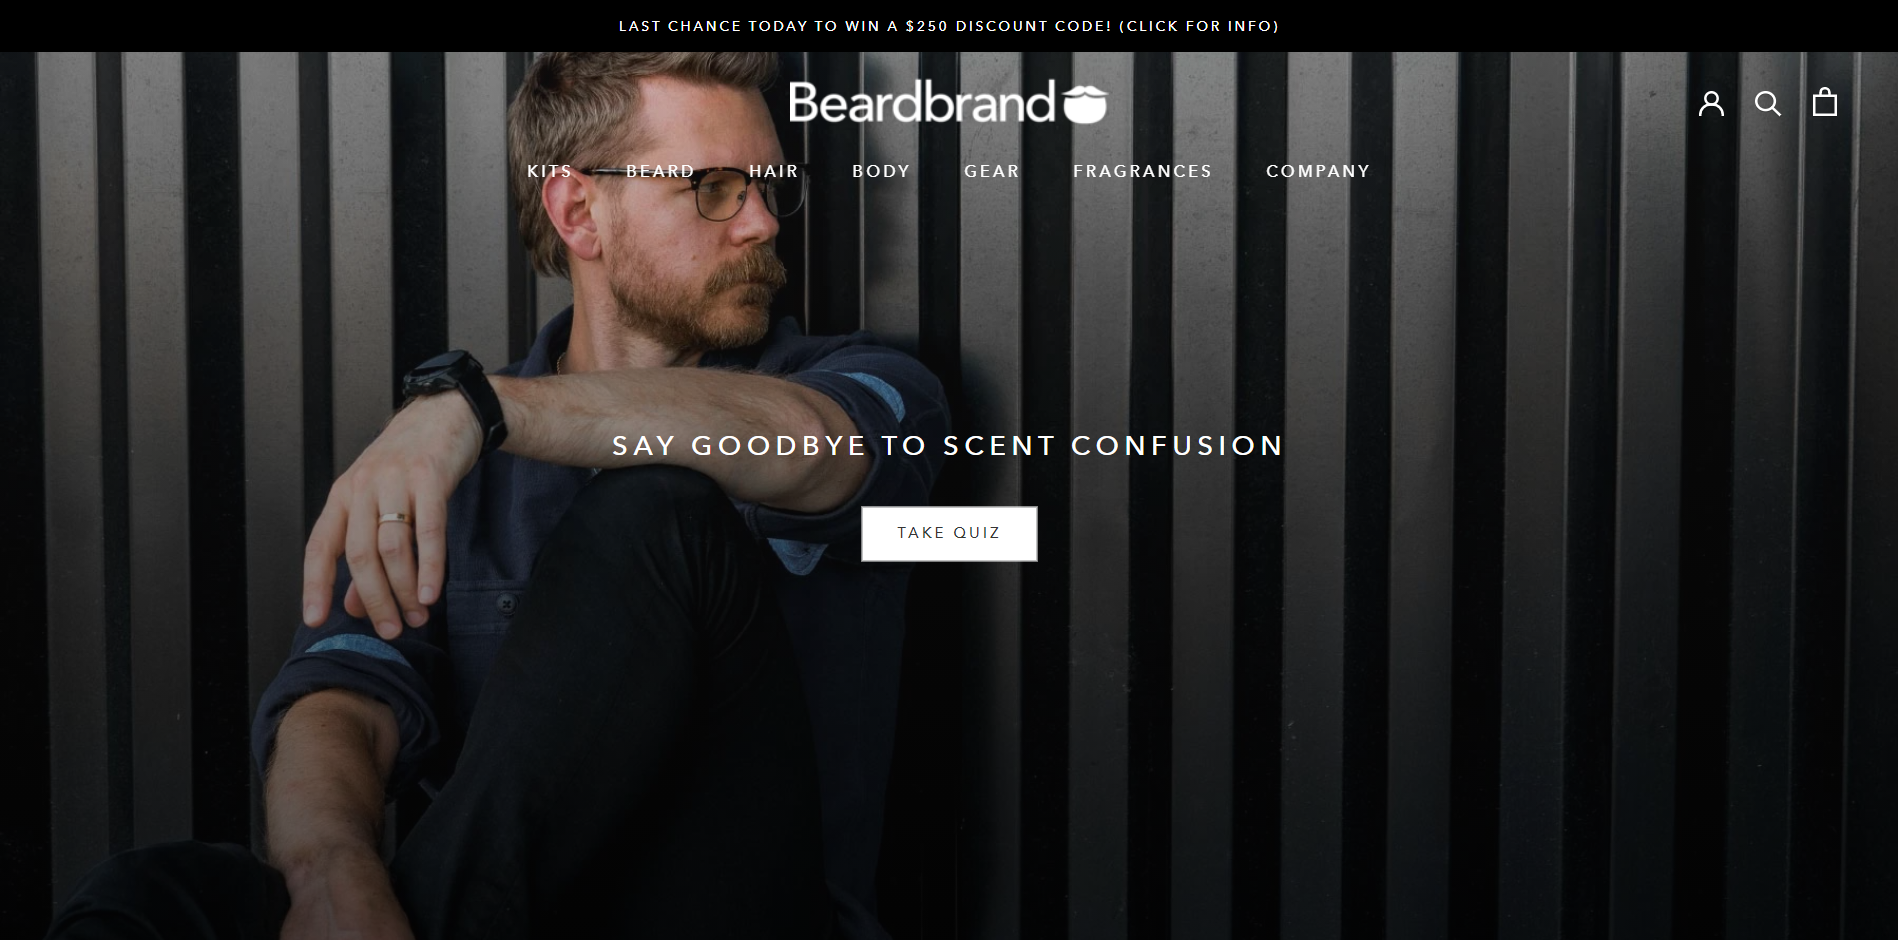 The second example of a good landing page